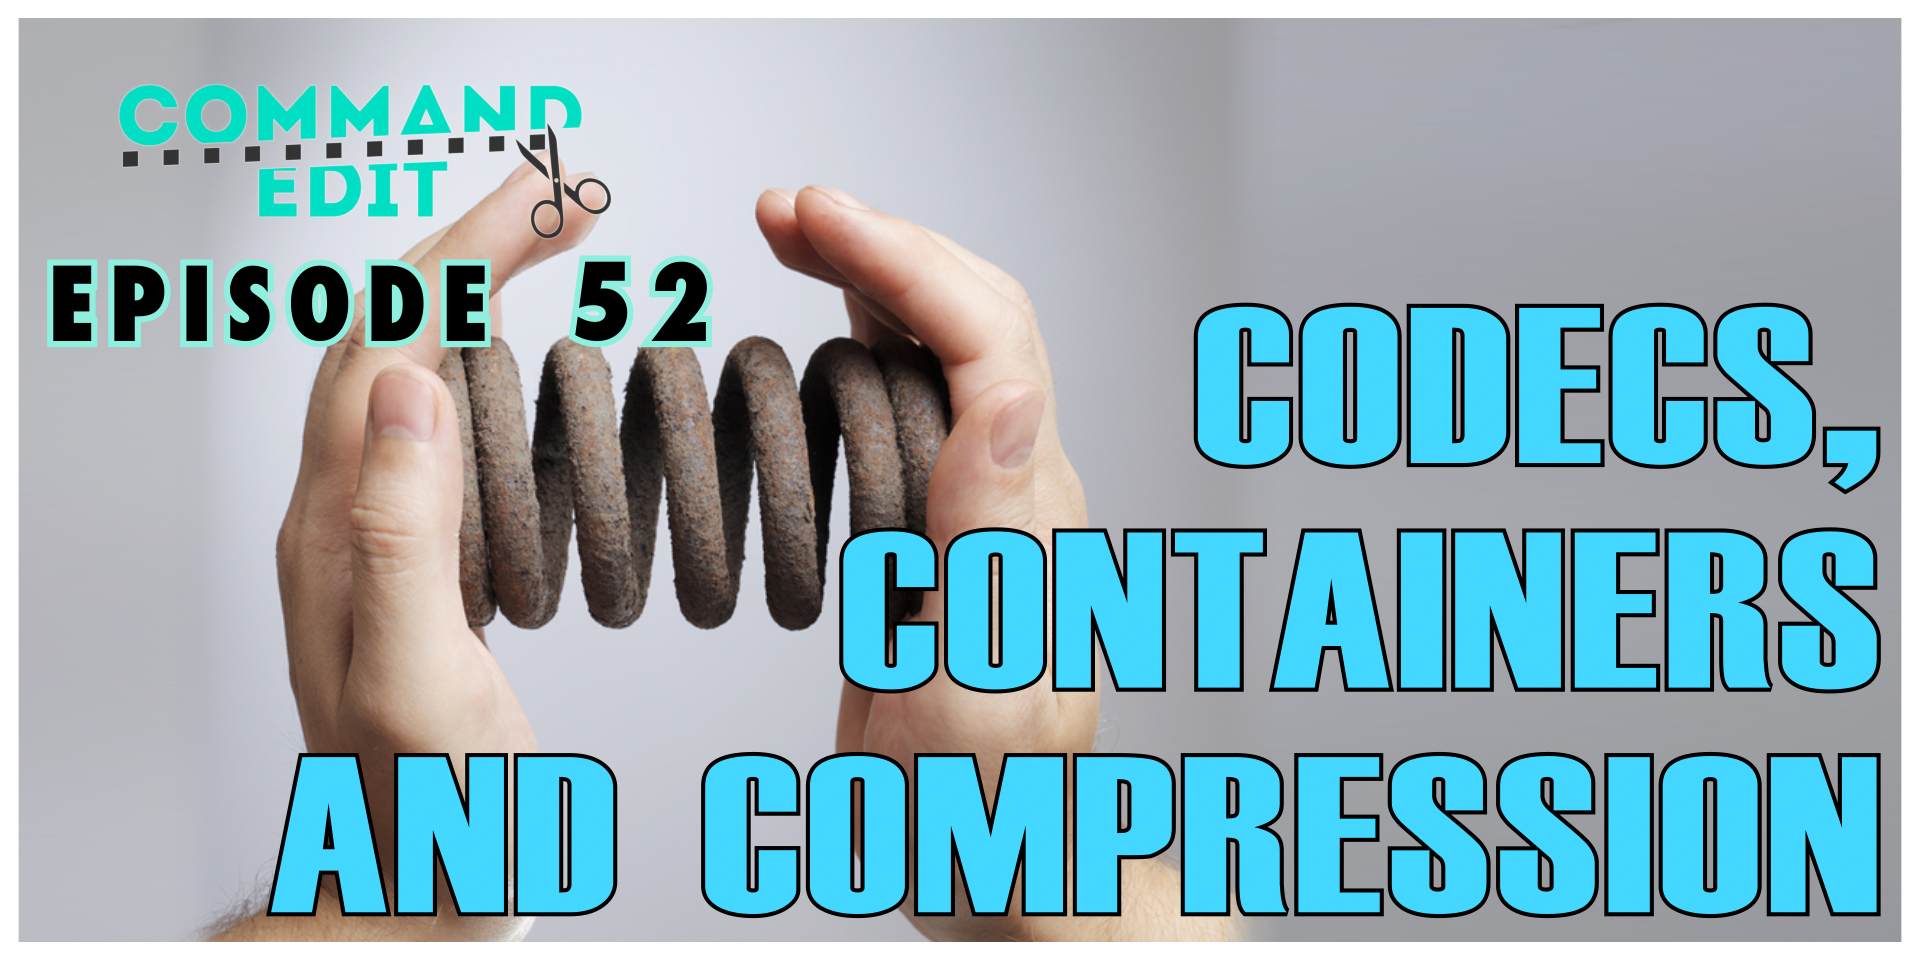 Episode 52 of Command Edit Podcast Codec Containers and Compression